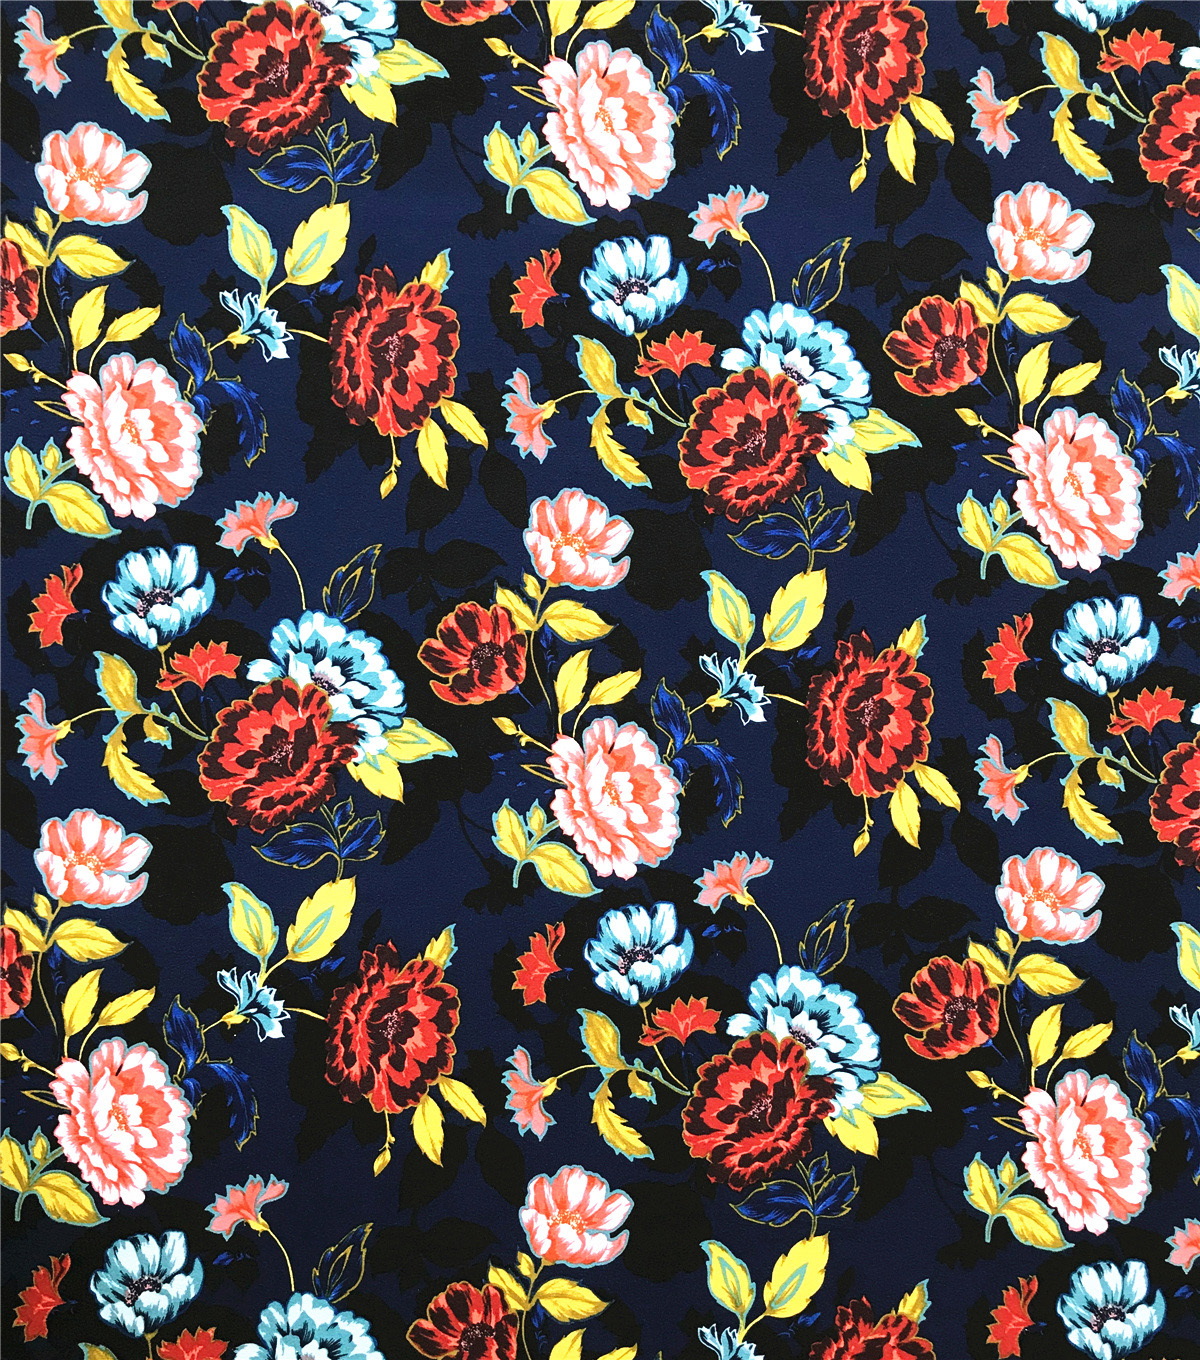 Ember Knit Prints Double Brushed Fabric-Navy Multi Floral